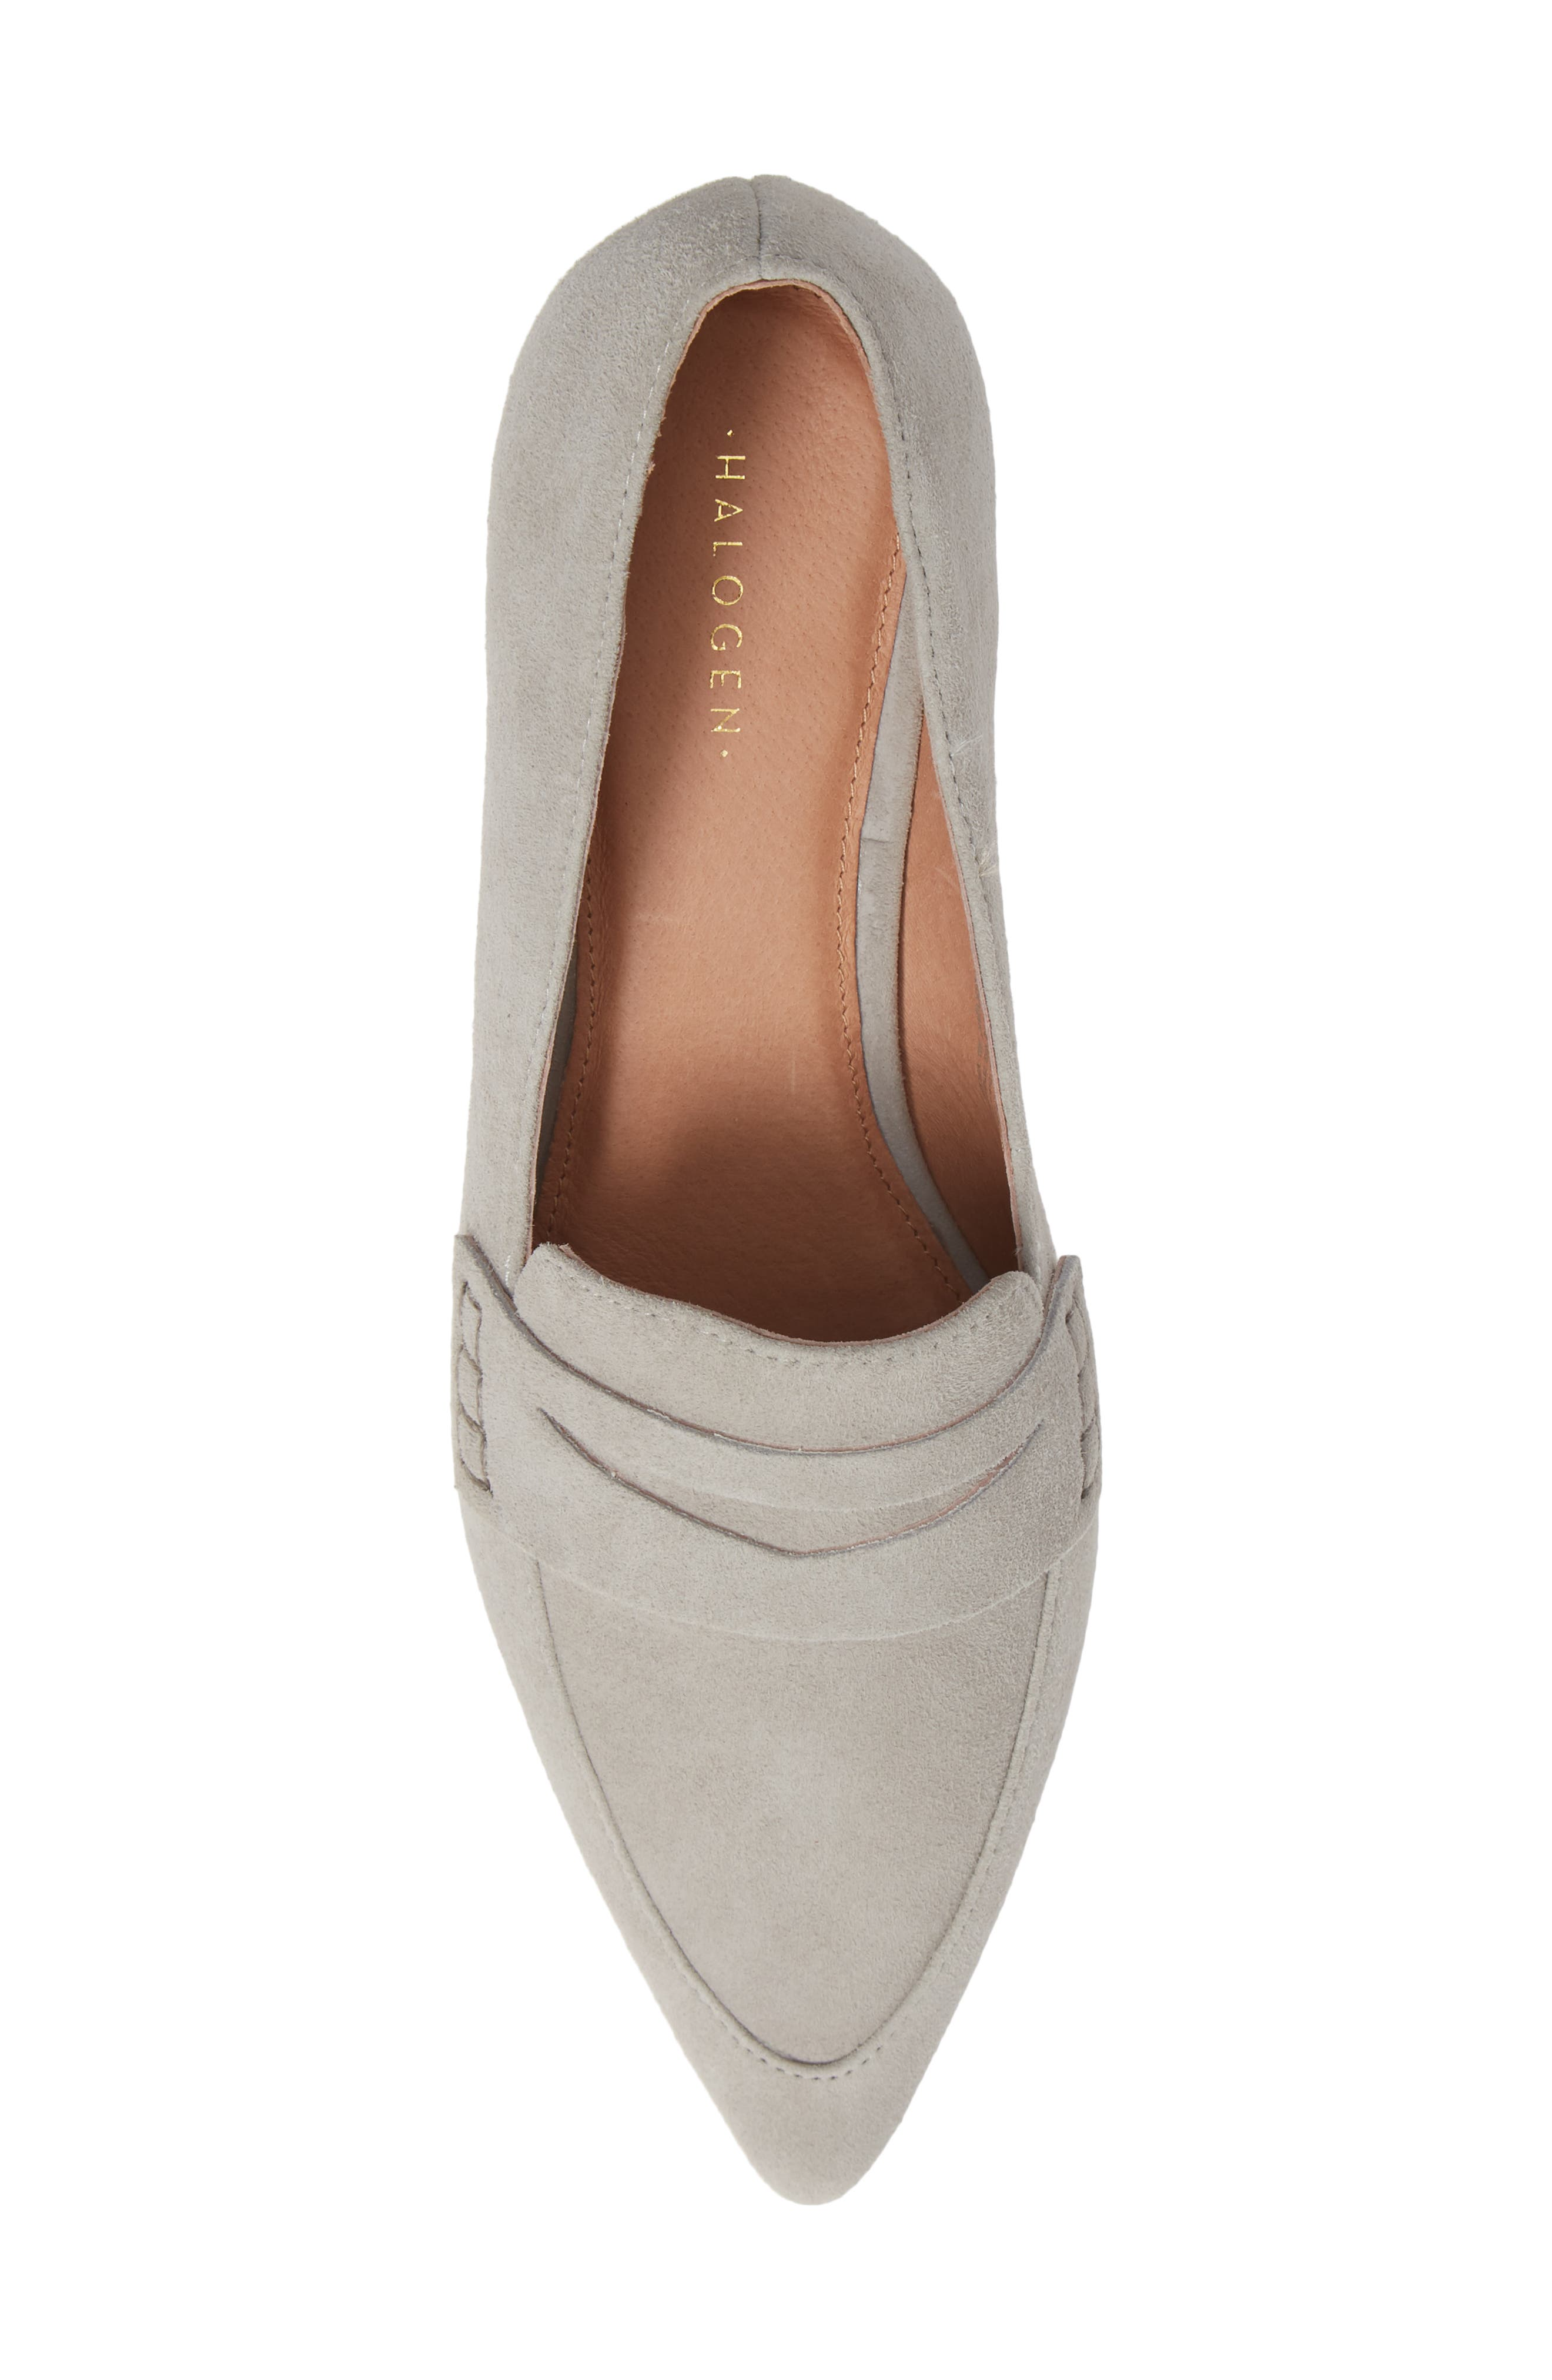 Isabelle Pointy Toe Pump,                             Alternate thumbnail 5, color,                             LIGHT GREY SUEDE